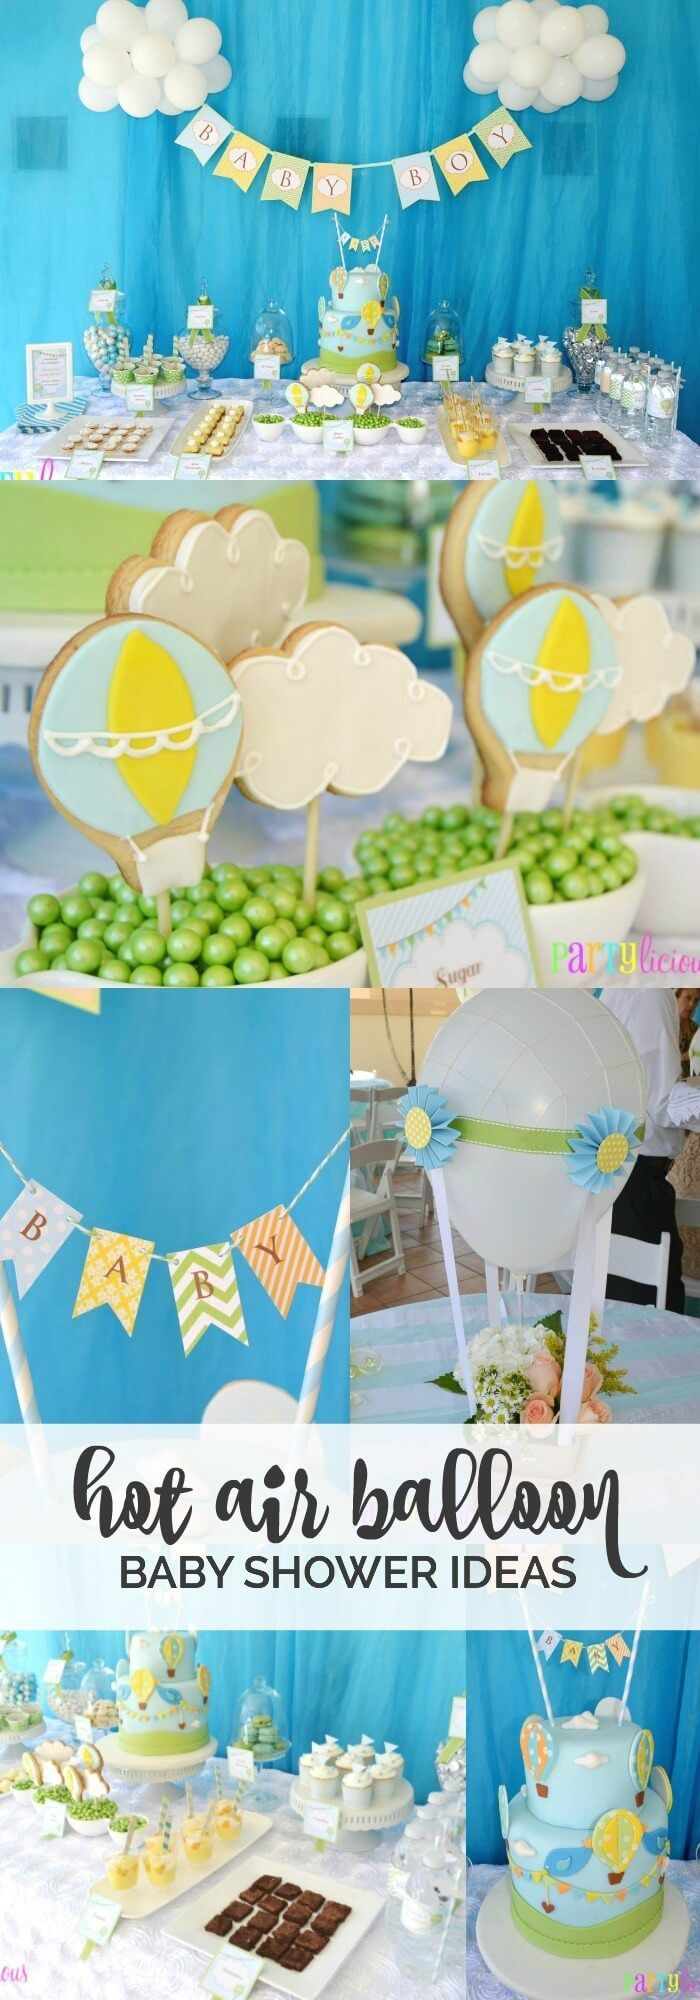 Boy's Hot Air Balloon Party Theme, Adorable!